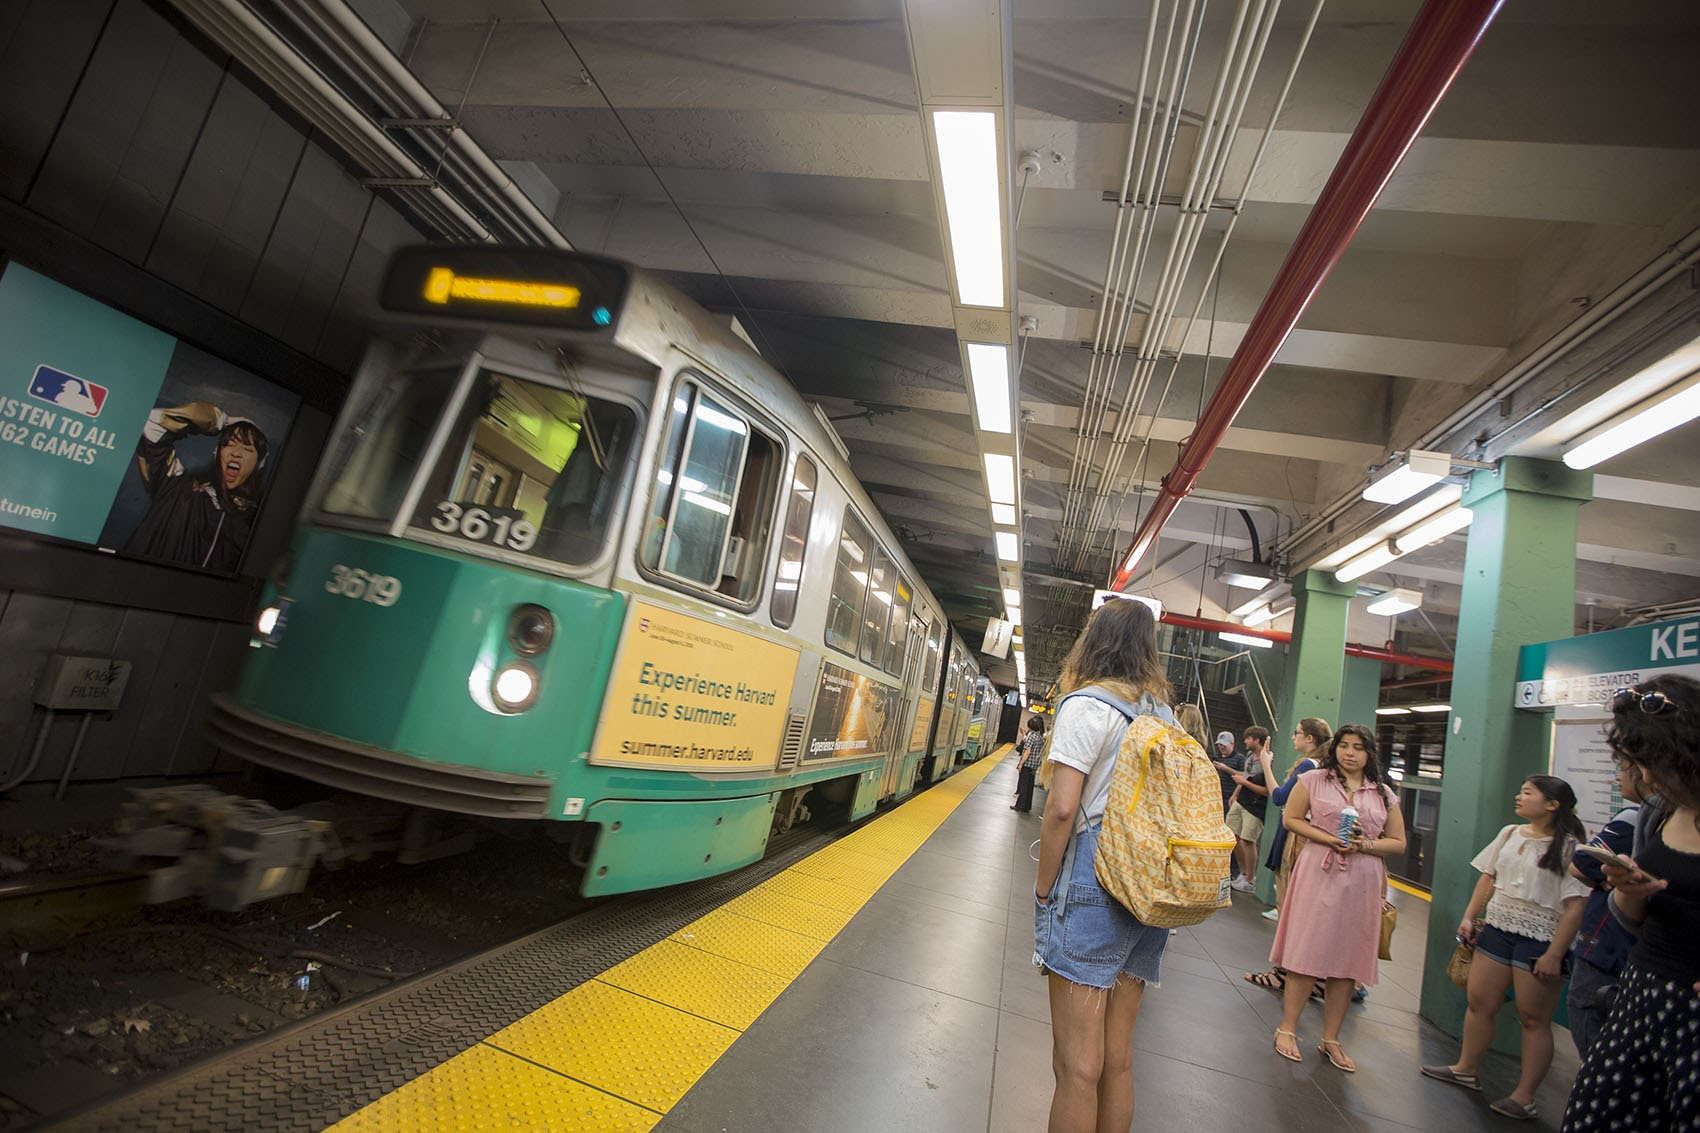 Ballooning Pension Gap Forces Mbta To Weigh Options Wbur